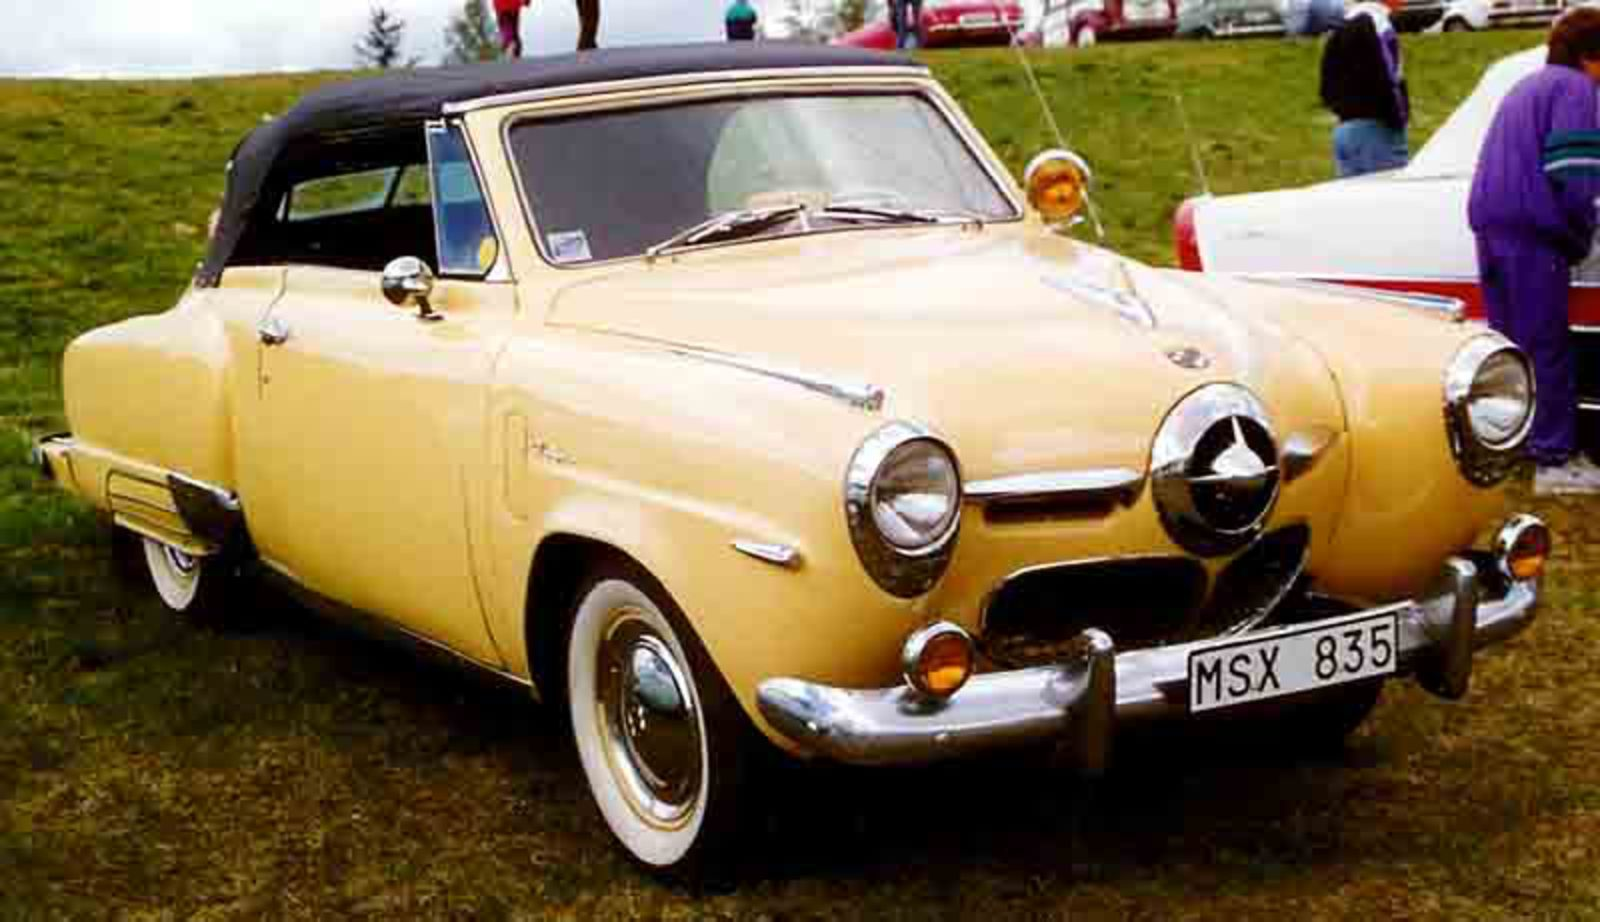 File:Studebaker Champion Cabriolet 1950.jpg - Wikimedia Commons